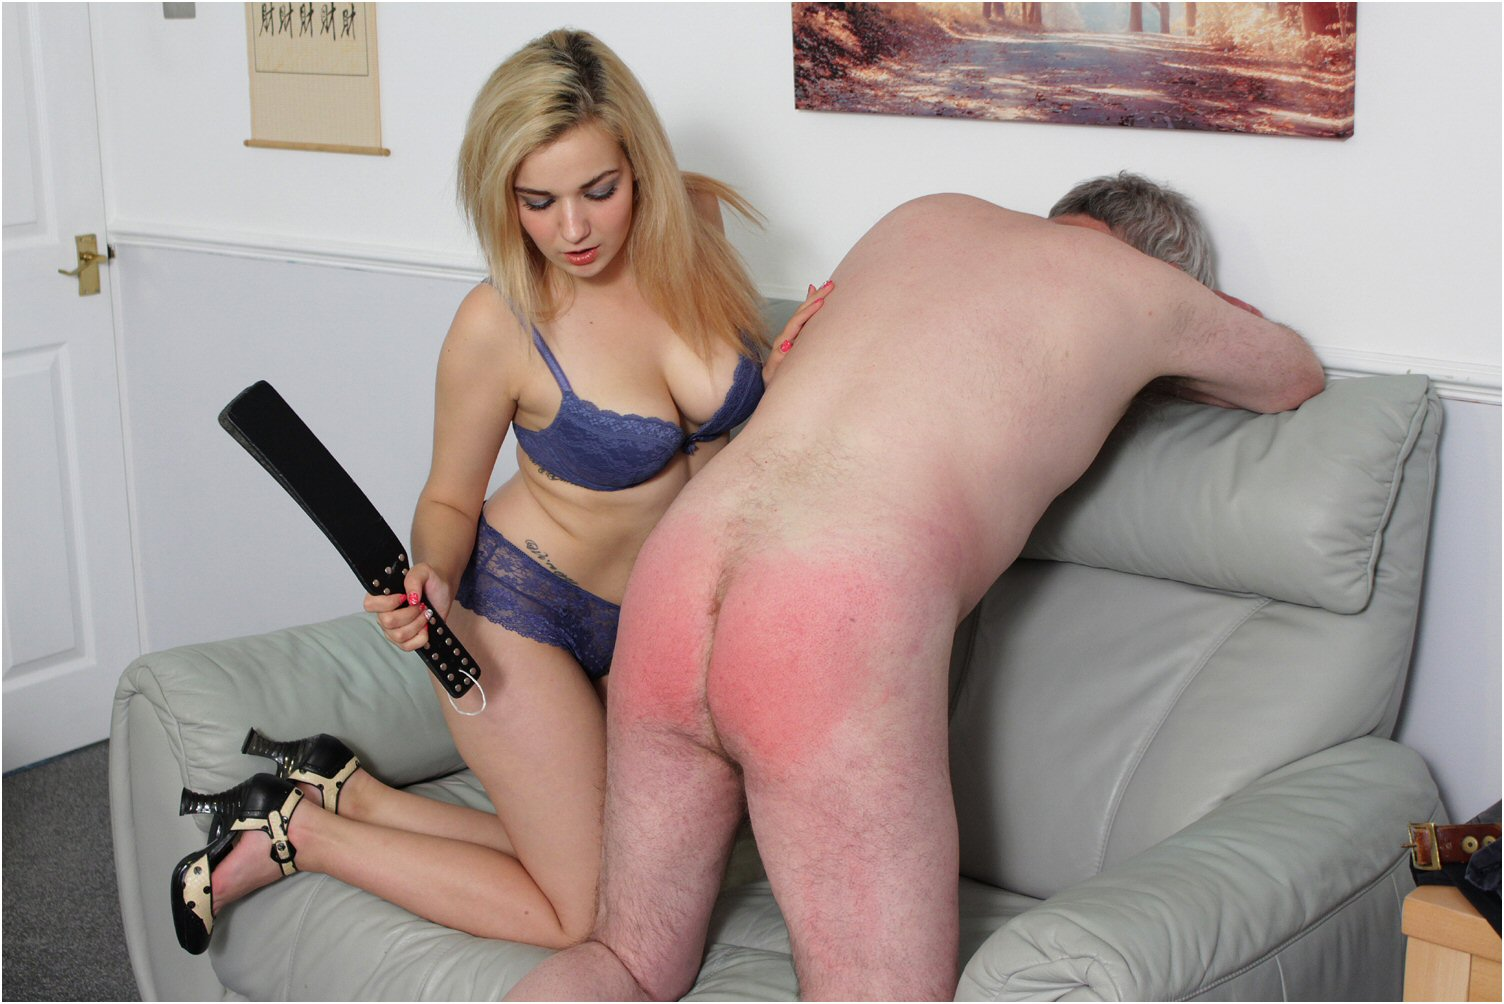 Domination female spanking loves take